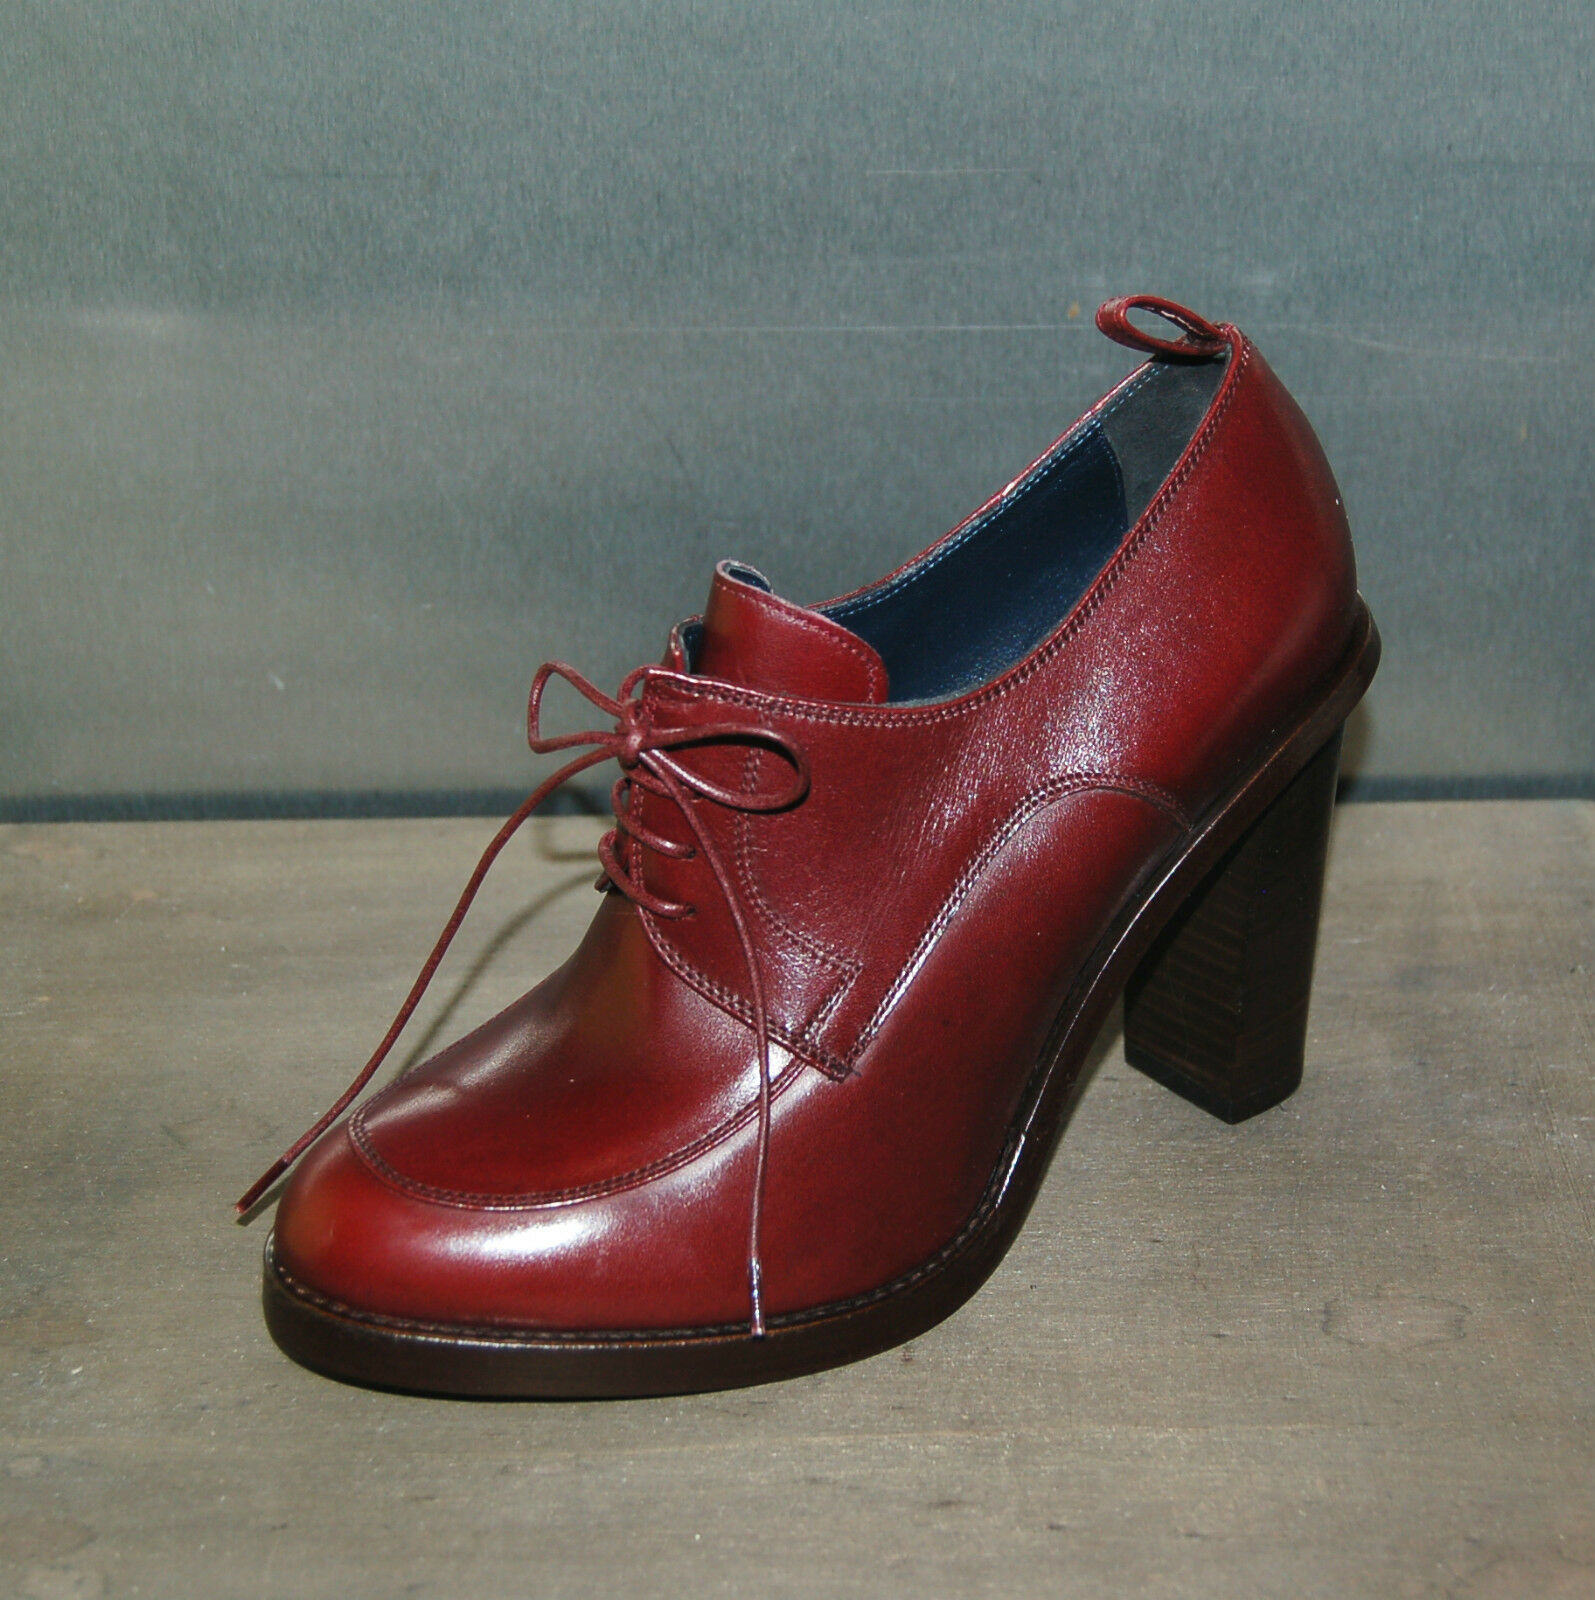 36 - LACEUP DERBY BORDEAUX - ROANO CALF - LEATHER LEATHER LEATHER SOLE - HEEL H.10cm 8ae8f6